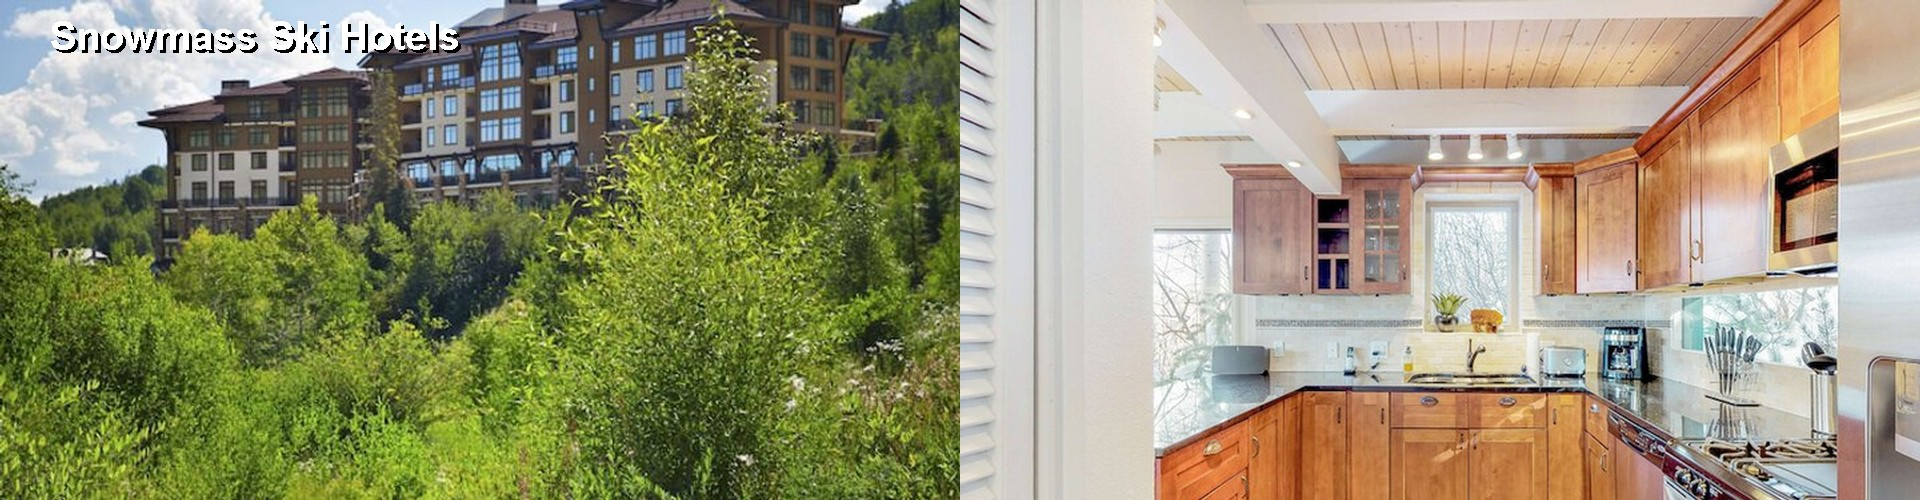 5 Best Hotels near Snowmass Ski